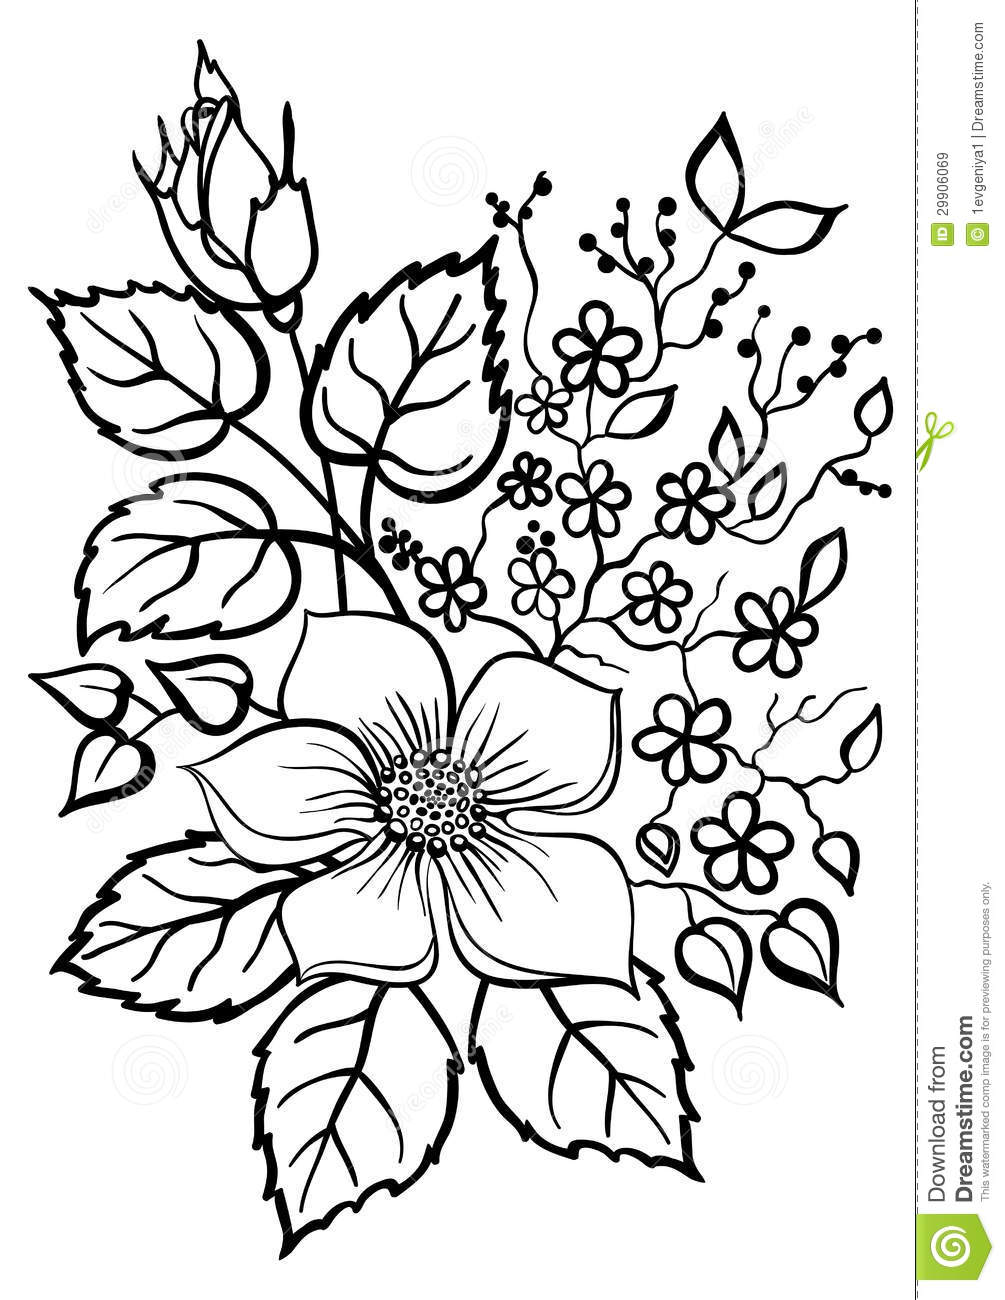 Free outline pictures of flowers clip free stock Beautiful Flower Arrangement, A Black Outline On A White Royalty ... clip free stock